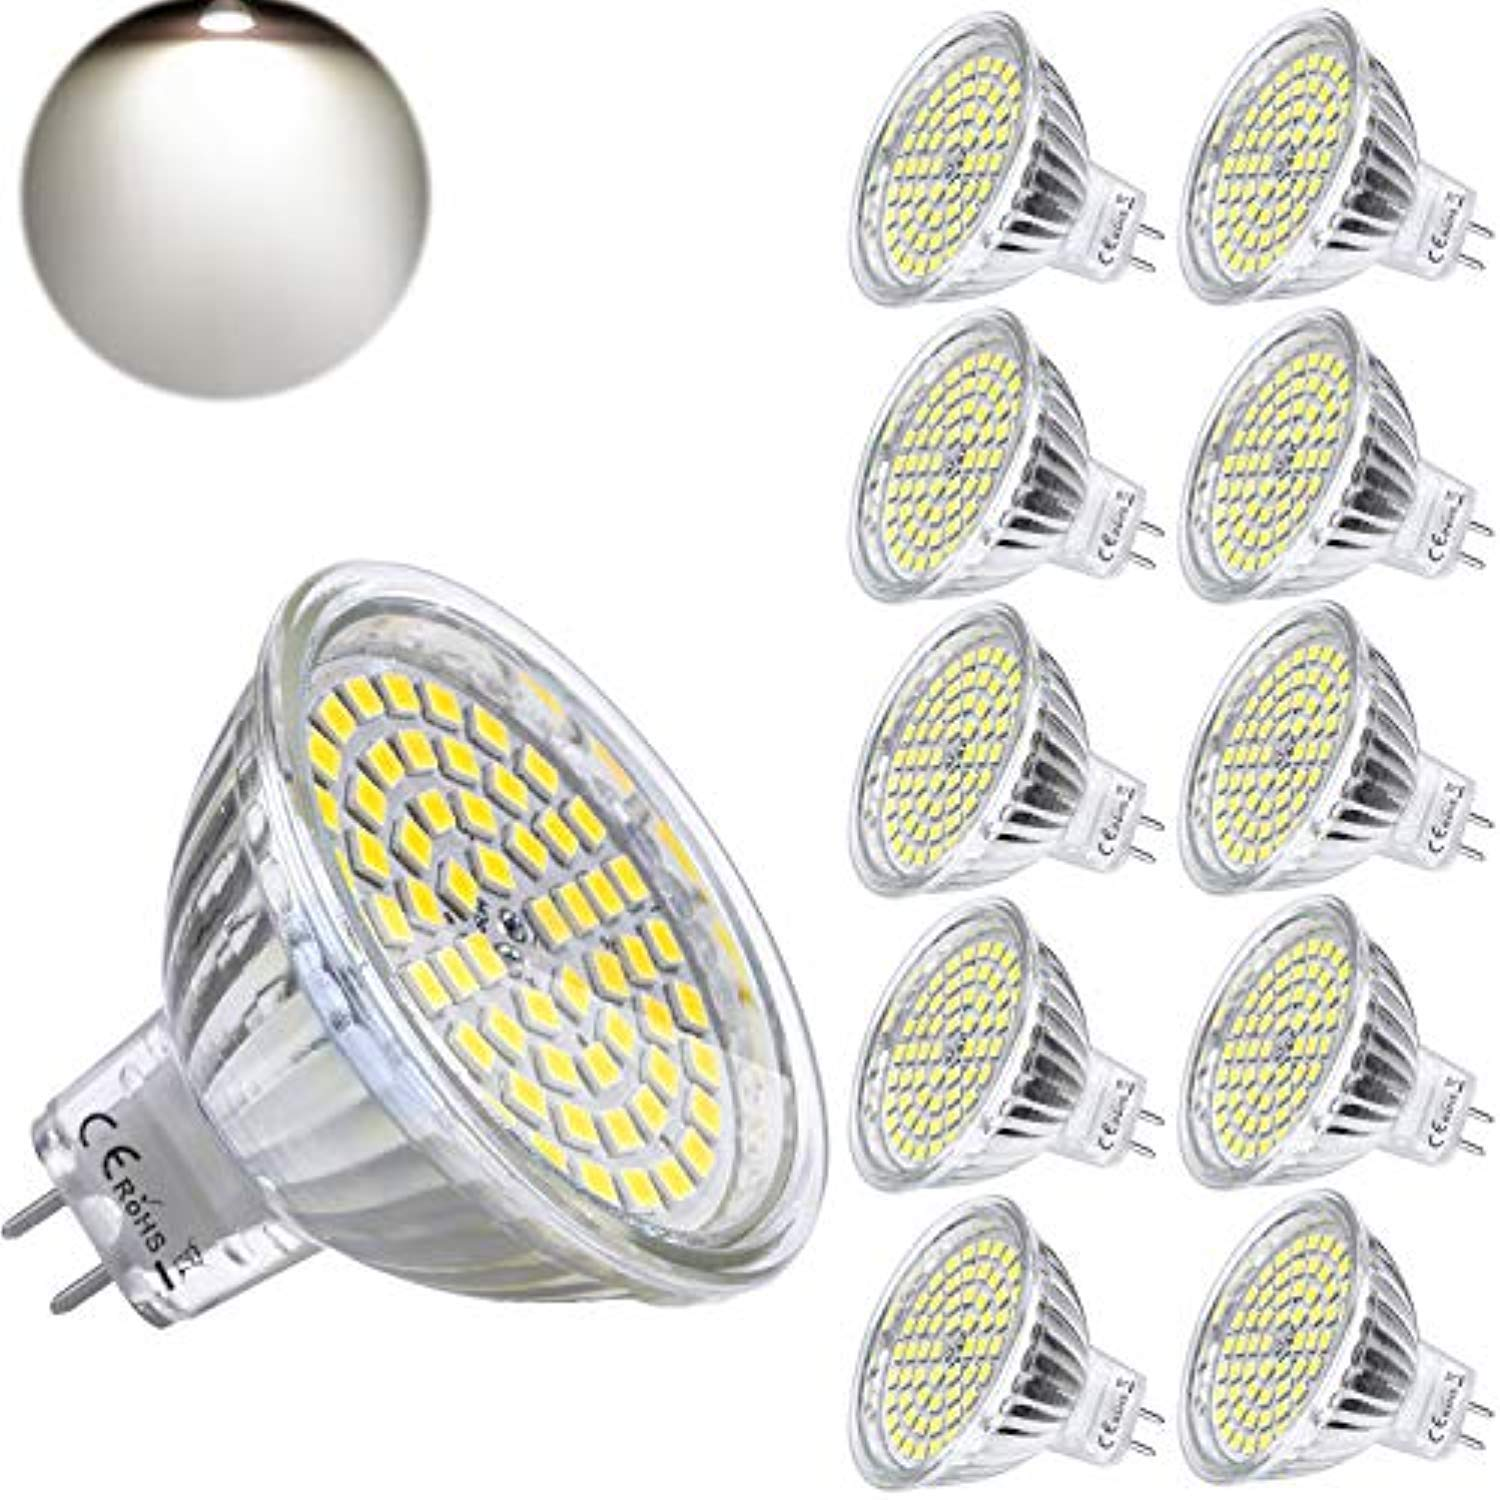 MR16 GU5.3 LED 12V bombillas 5W luz diurna Reemplace 5W ...